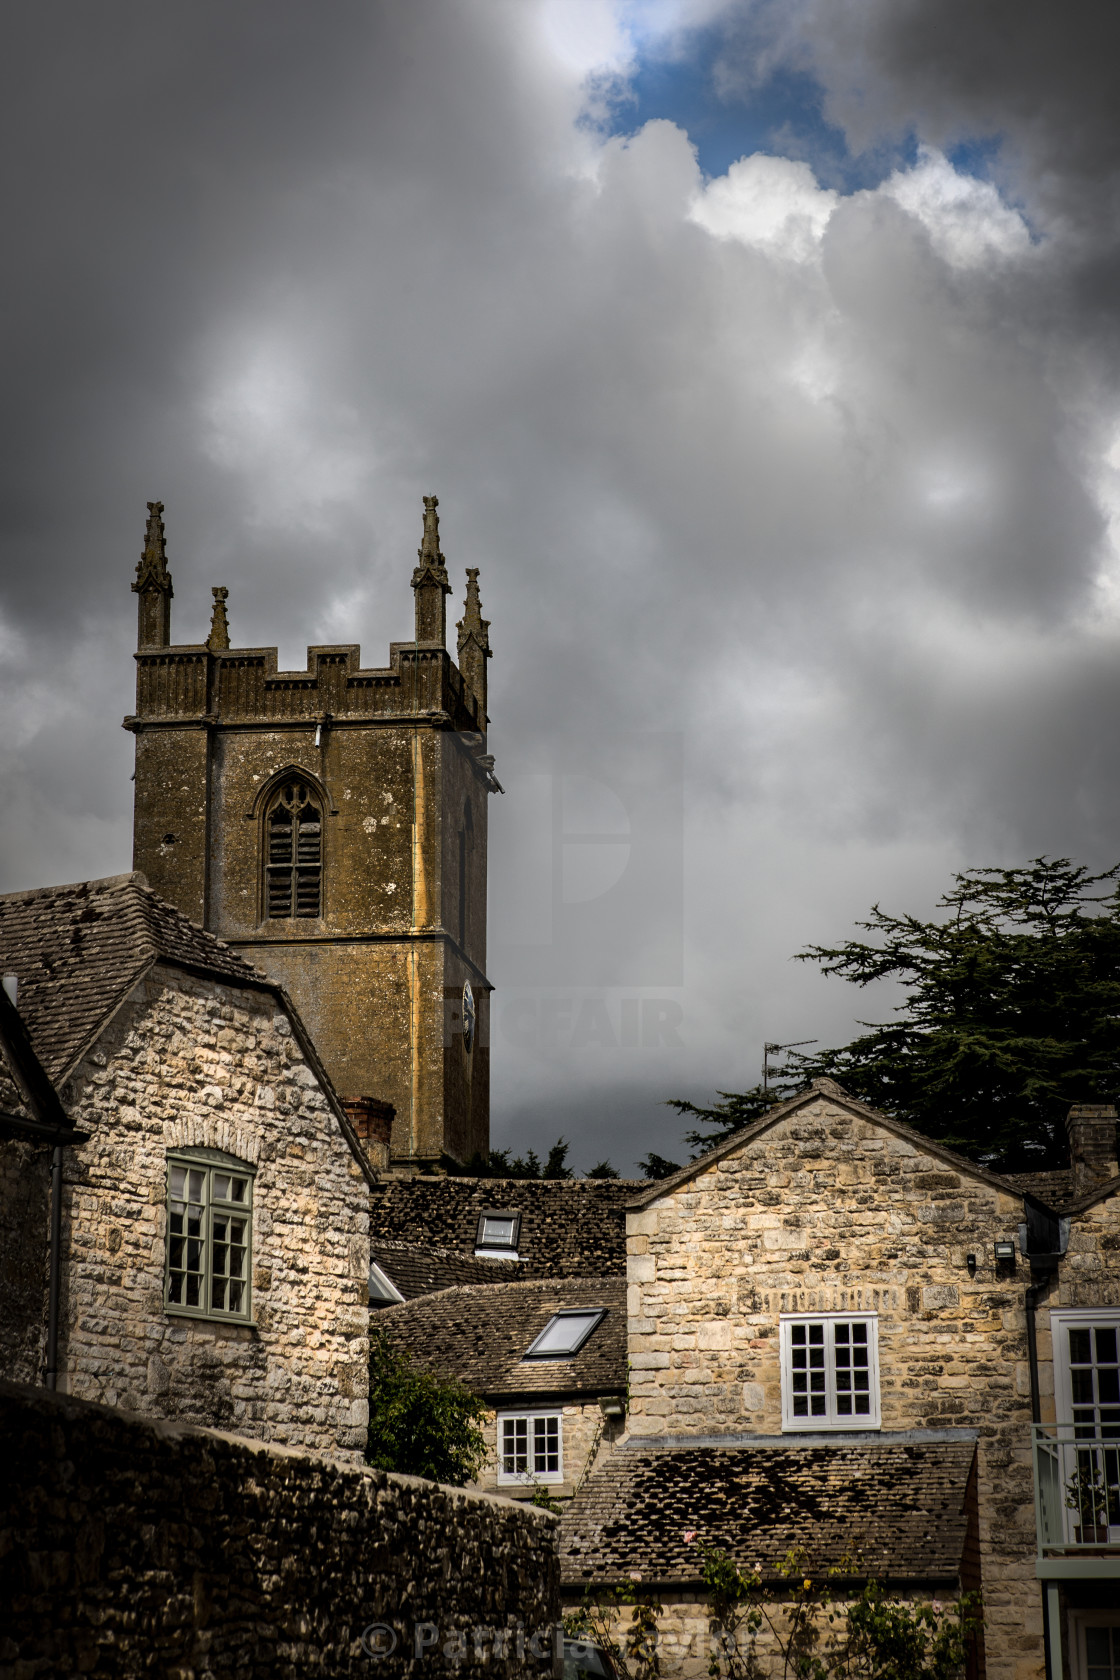 """Roof tops and church Scene - Stow on the Wold in the Cotswolds"" stock image"